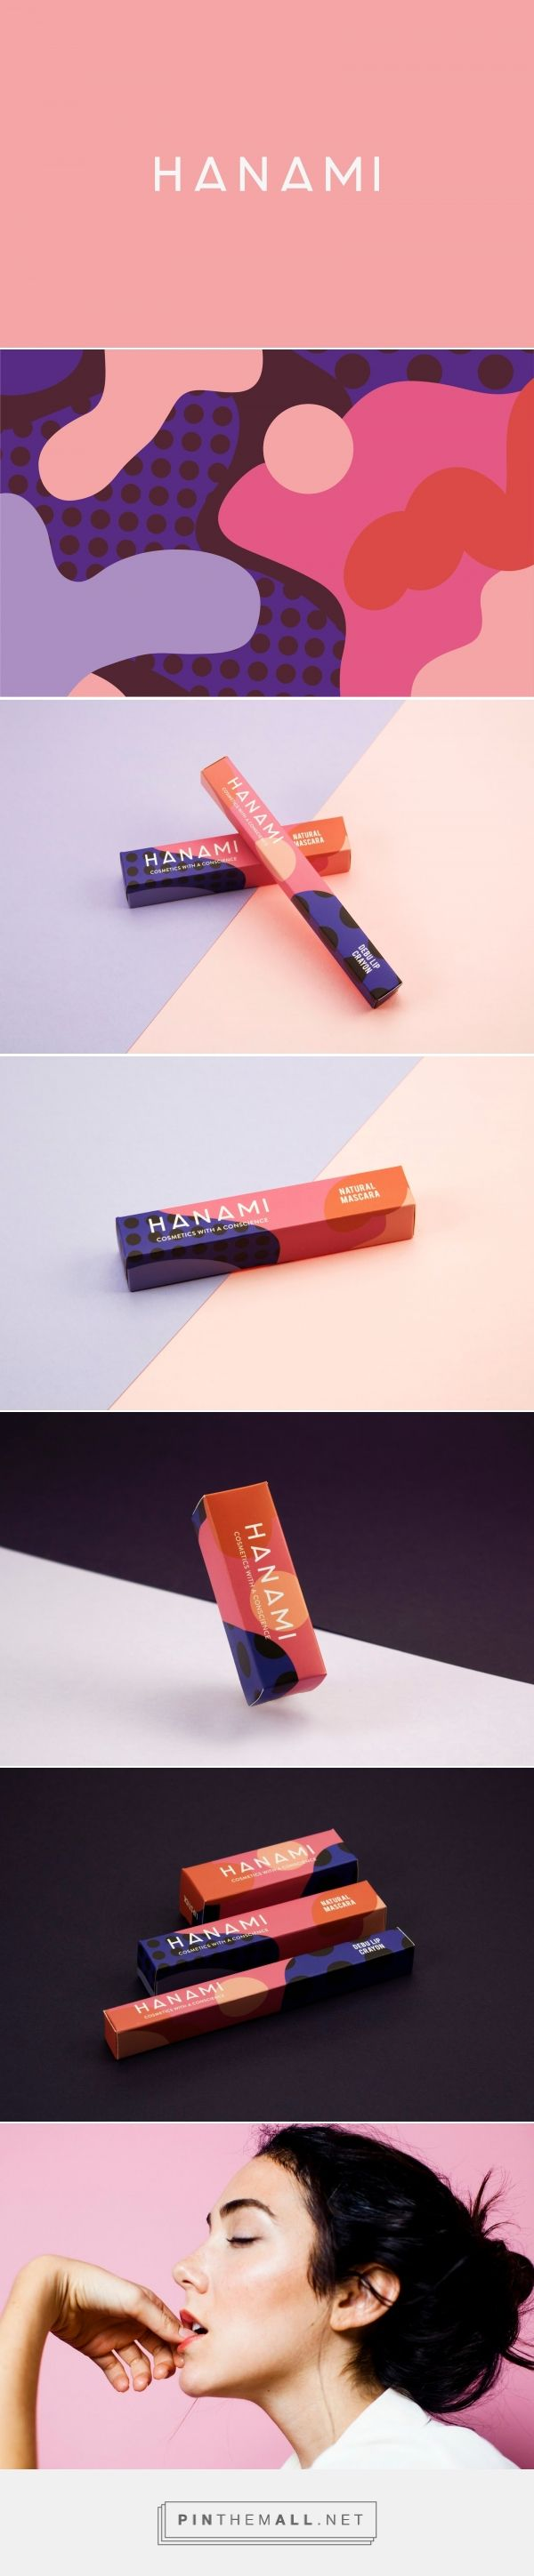 HANAMI on Packaging of the World - Creative Package Design Gallery - created via https://pinthemall.net